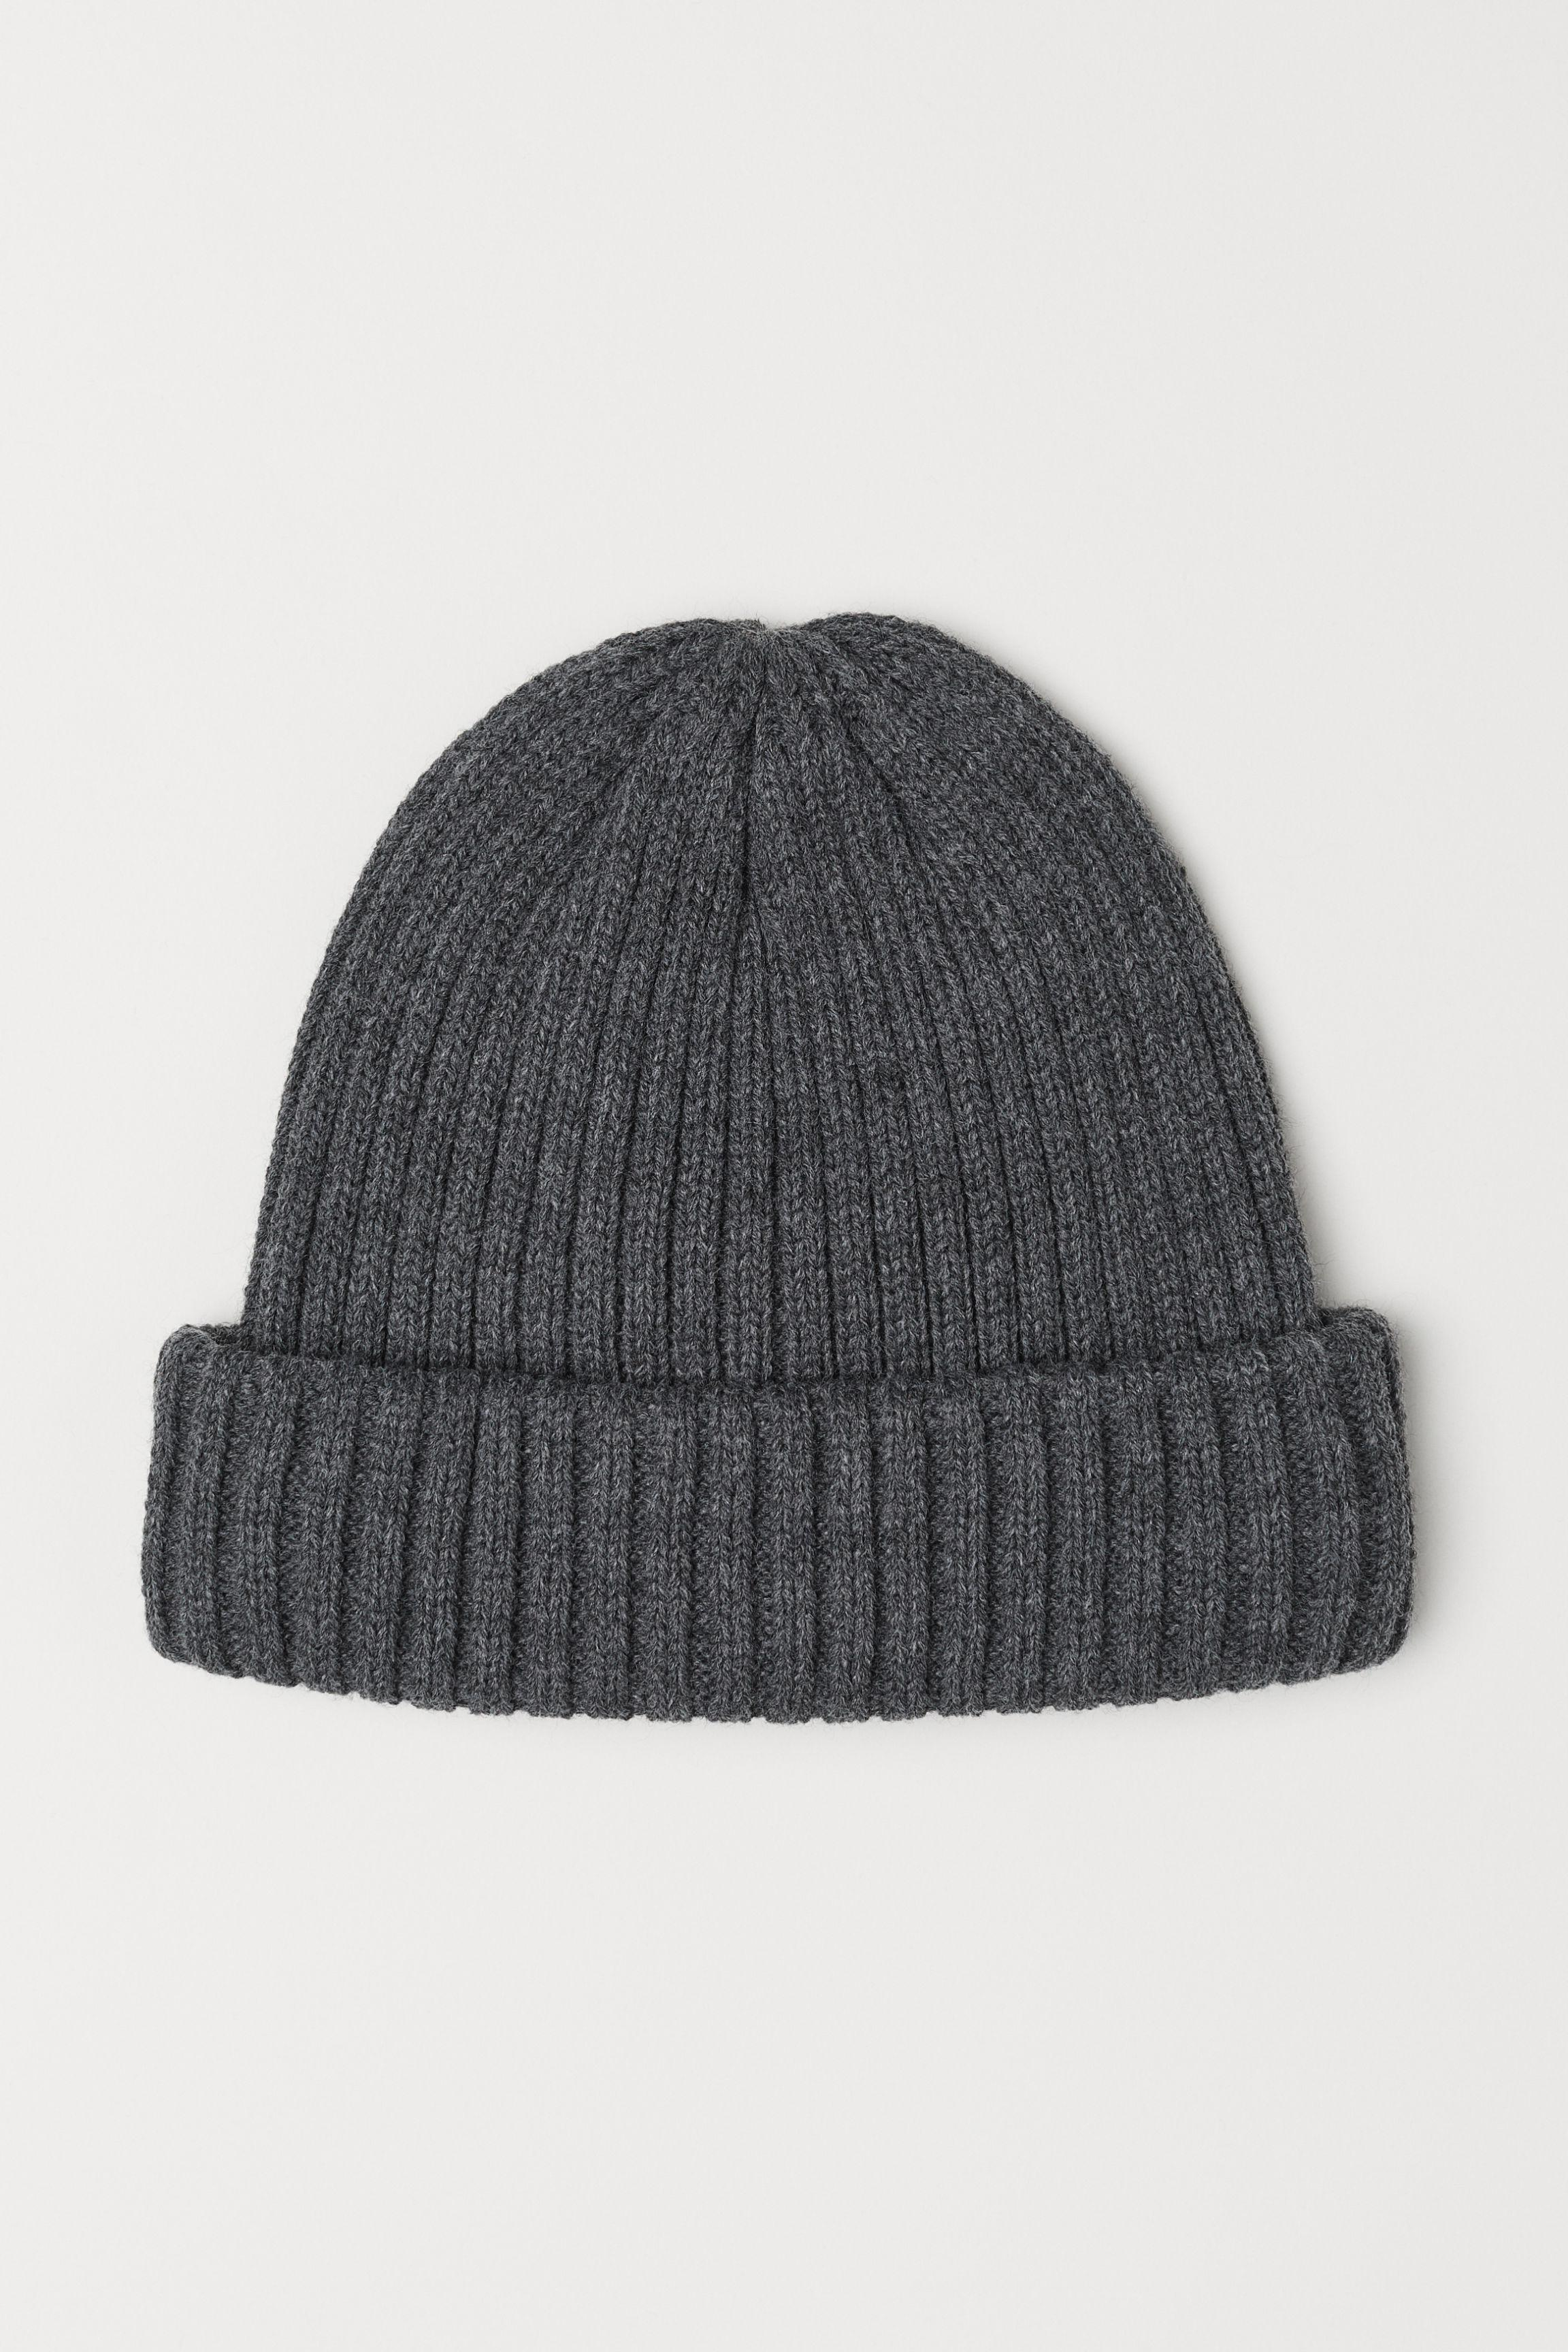 3e9a504aba835 Lyst - H M Rib-knit Hat in Gray for Men